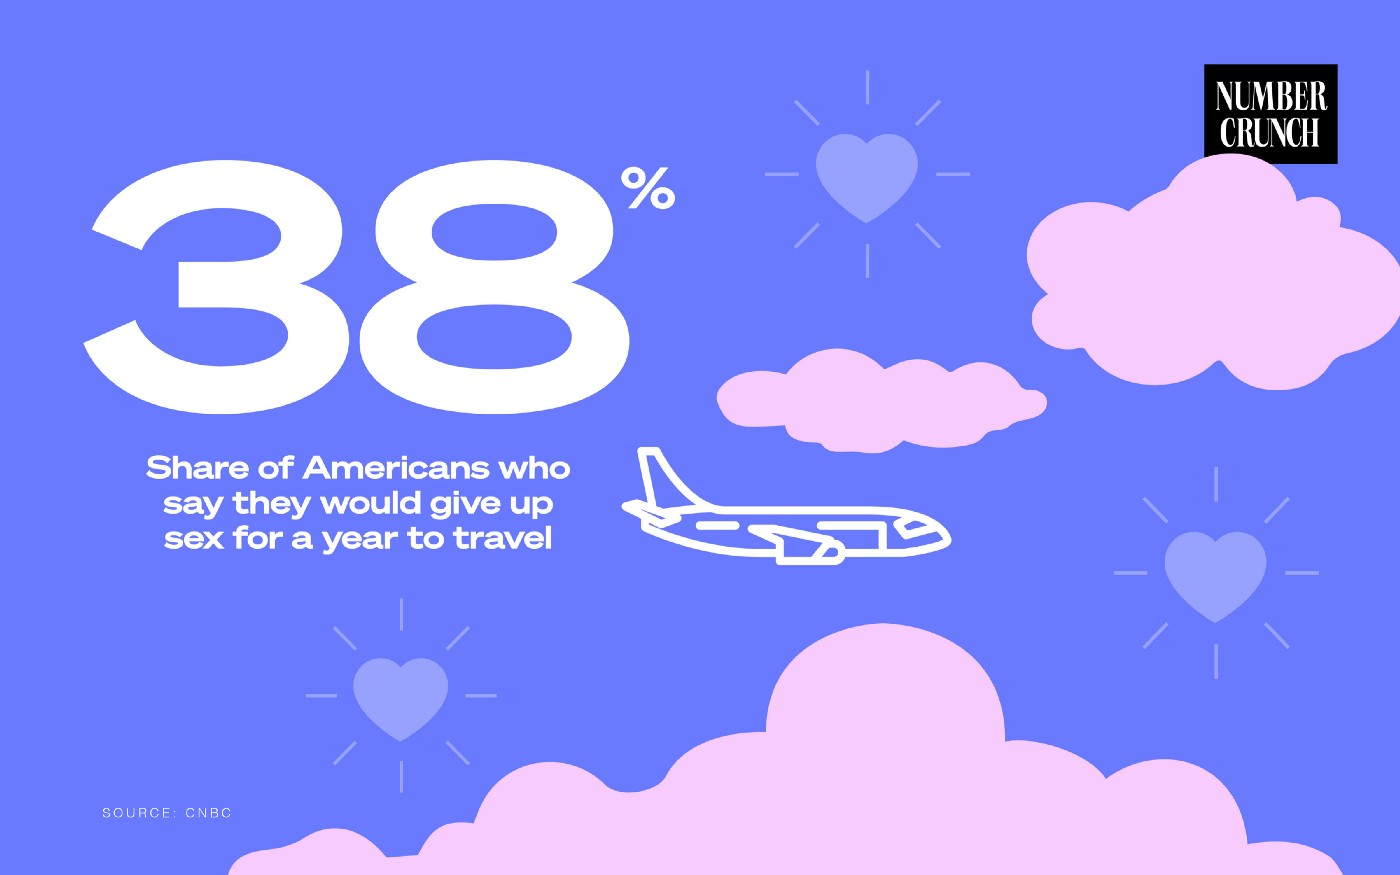 38%: Share of Americans who say they would give up sex for a year to travel Source: CNBC